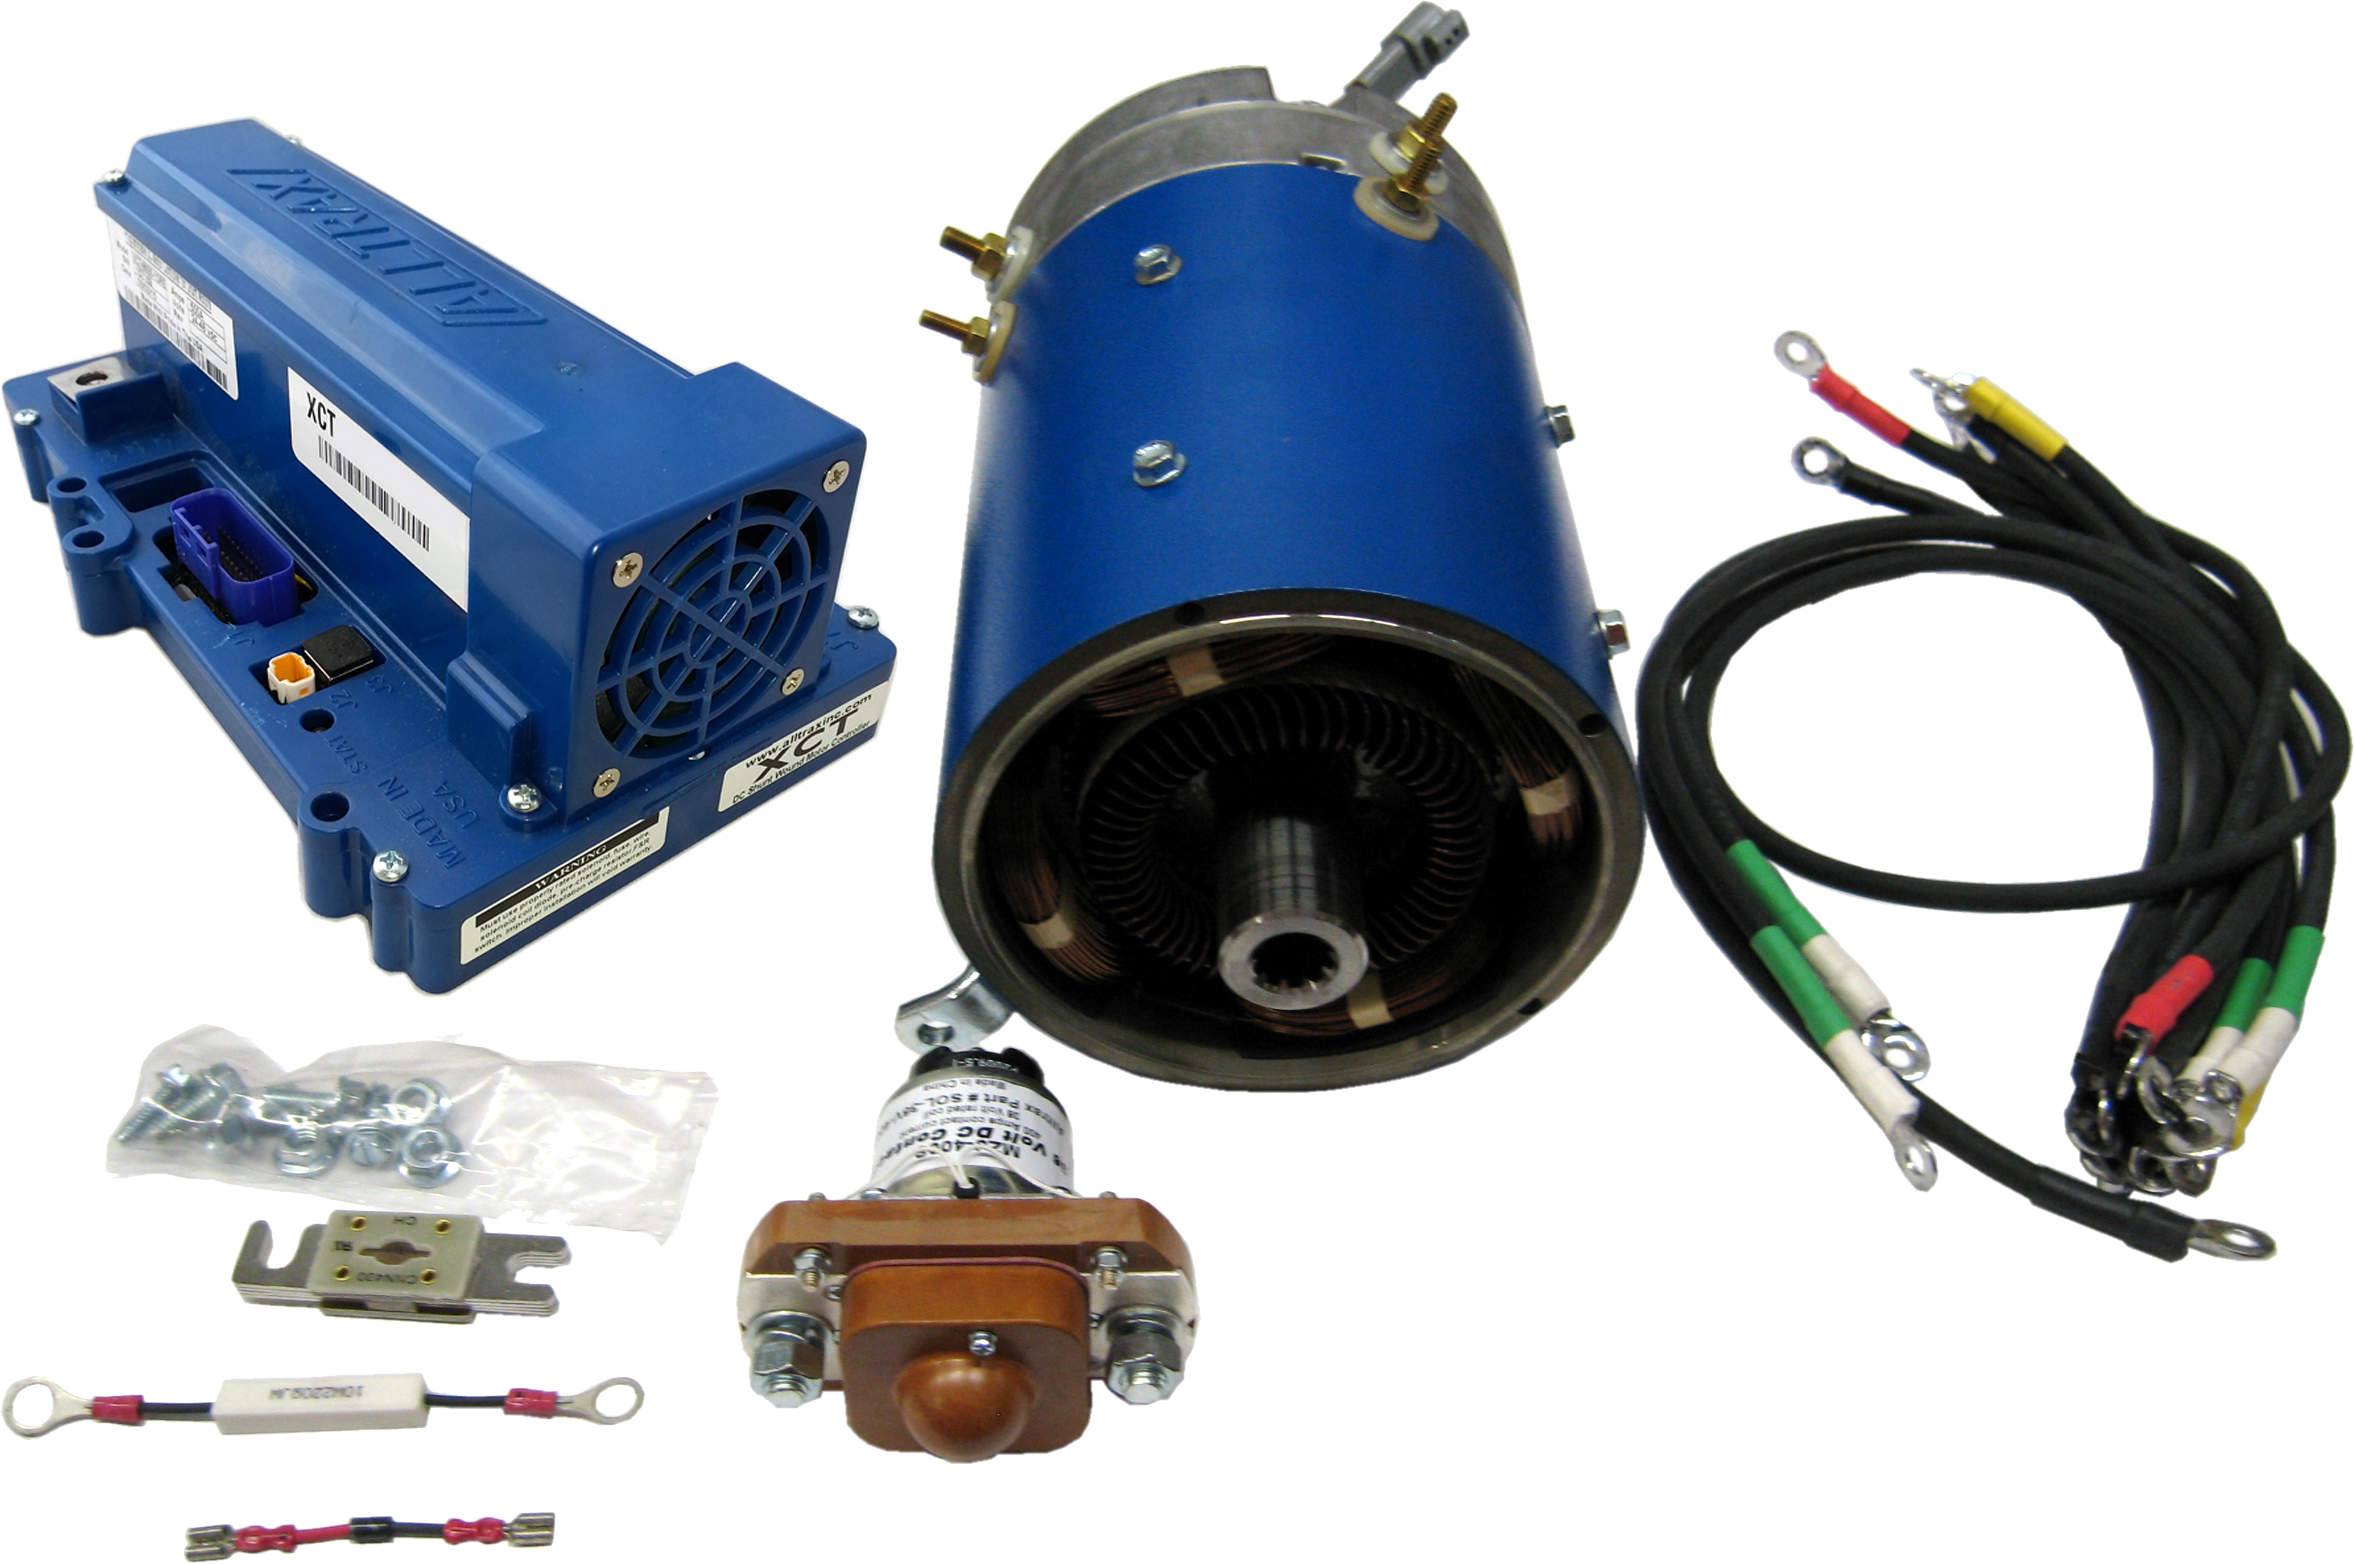 Club Car Electric Motor Golf Cart Upgrades-High Speed Precedent & IQ - Last  Motors Made In USA - New Used & Rebuilt Parts - D&D Motor Systems